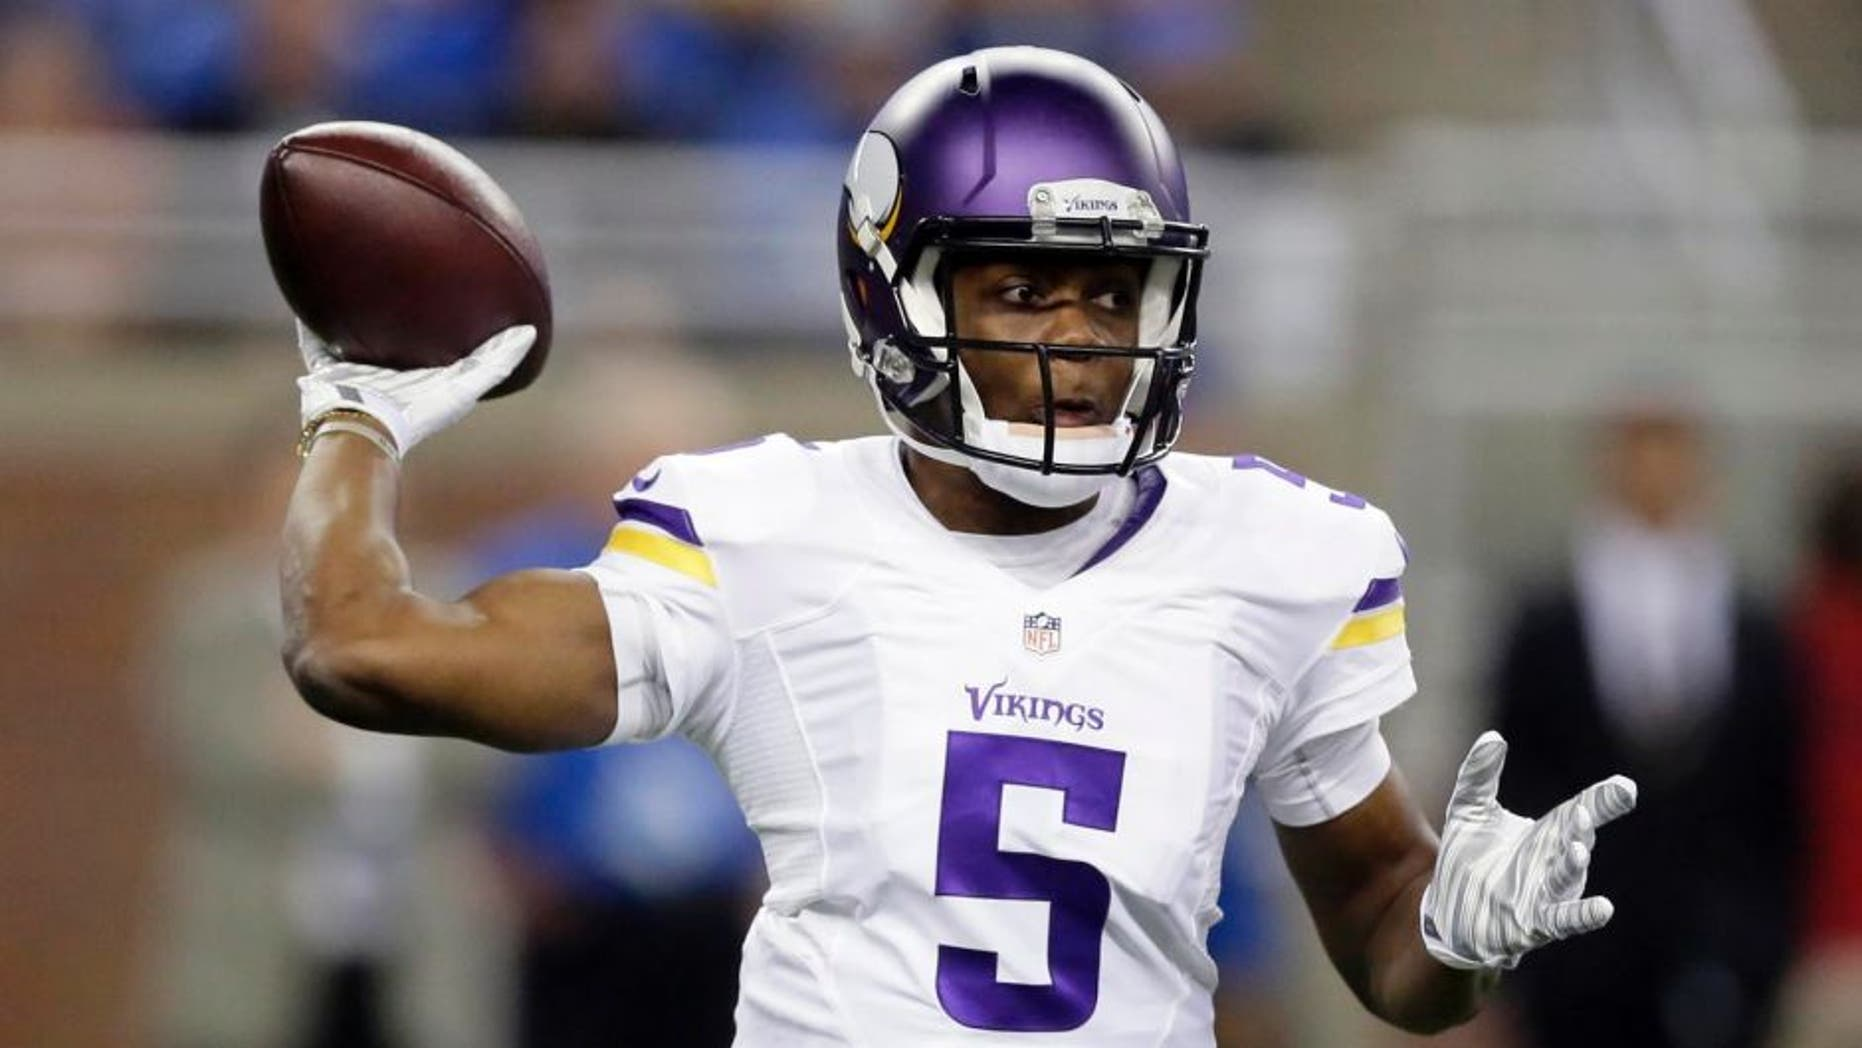 Minnesota Vikings quarterback Teddy Bridgewater throws during the first half against the Detroit Lions.